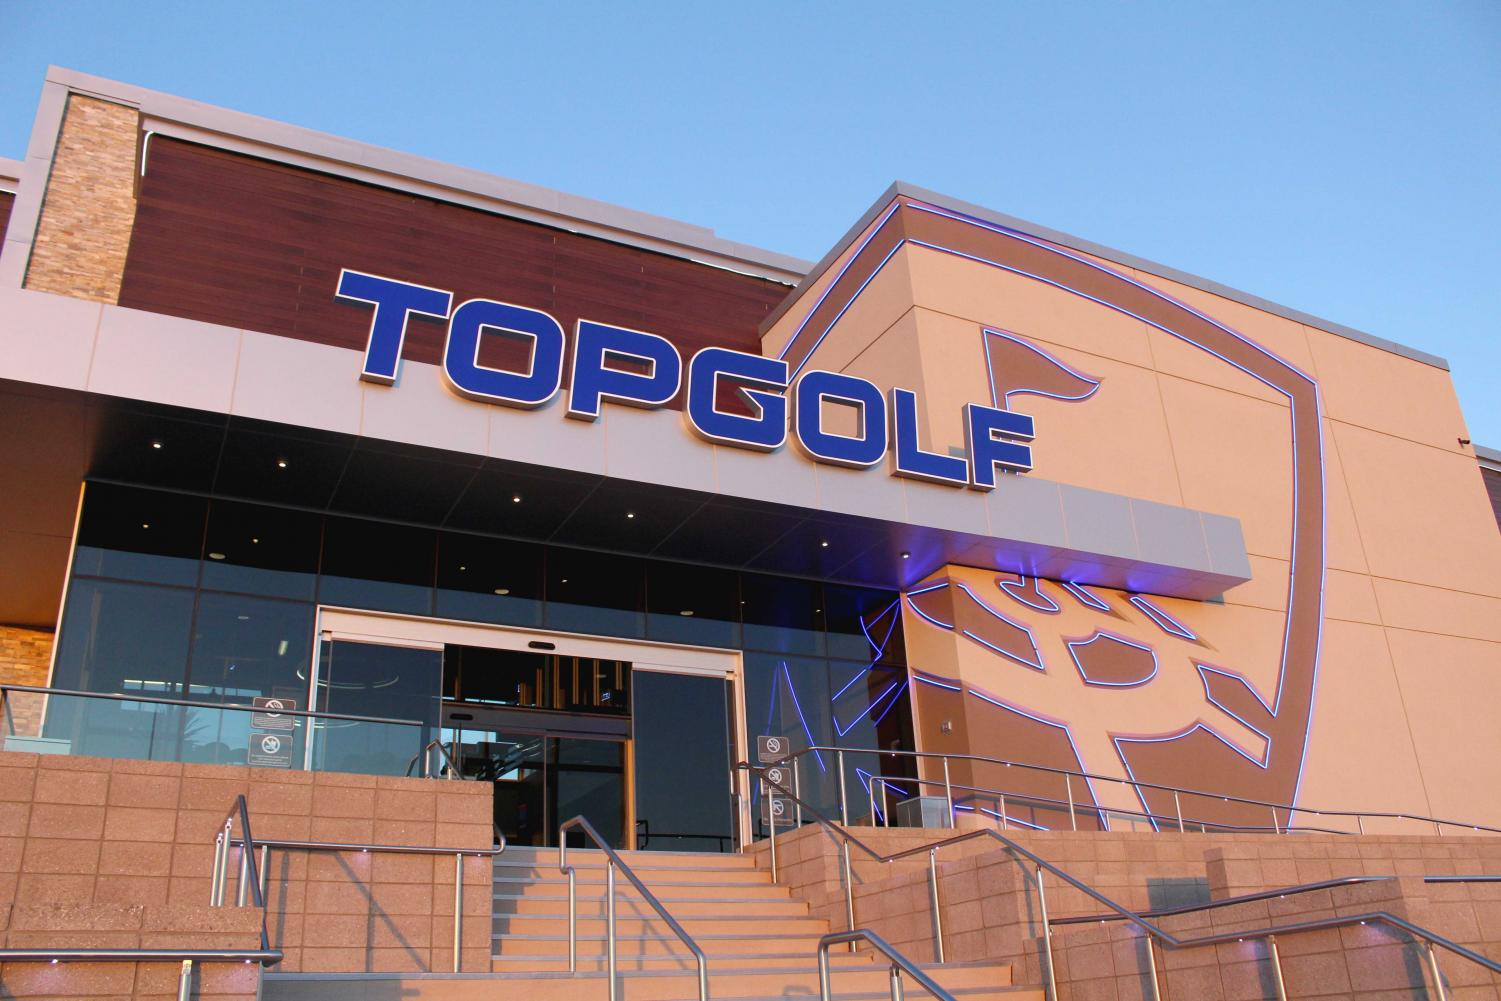 Topgolf  opened its doors on Feb. 2  and its located in  the 365 Vin Rambla Drive.